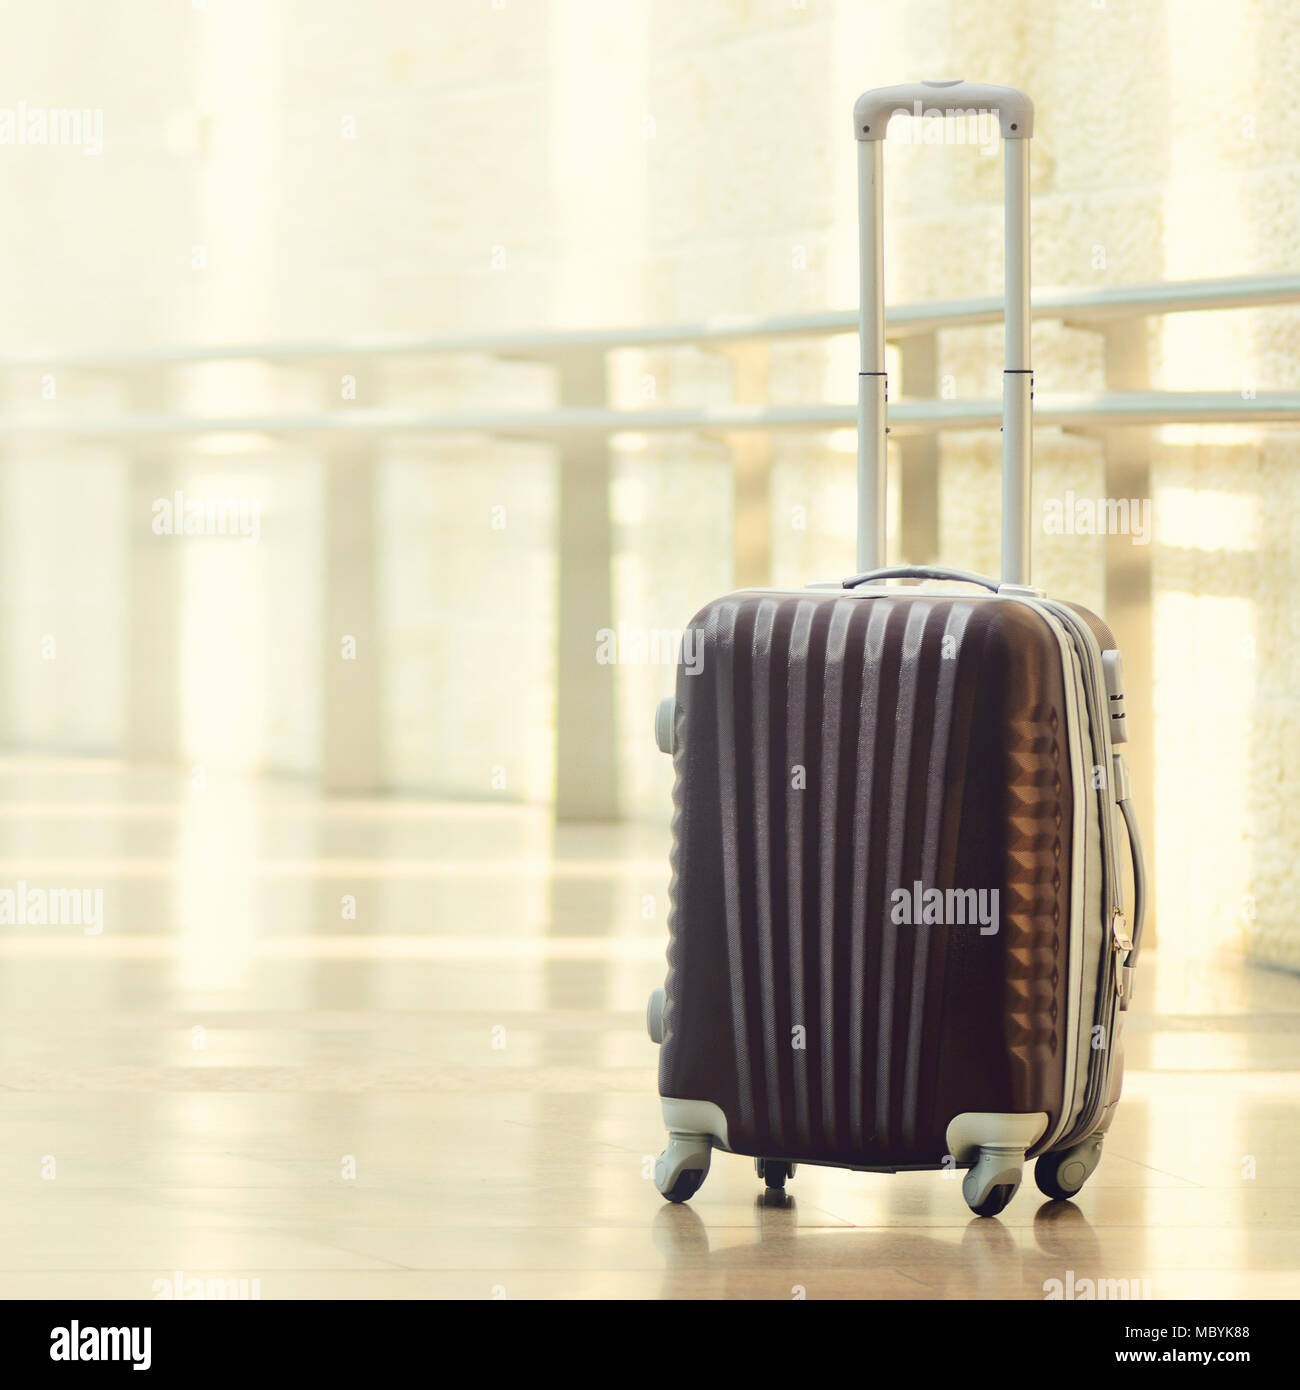 Packed travel suitcase, airport. Summer holiday and vacation concept. Traveler baggage, brown luggage in empty hall interior. Copy space. Square crop - Stock Image